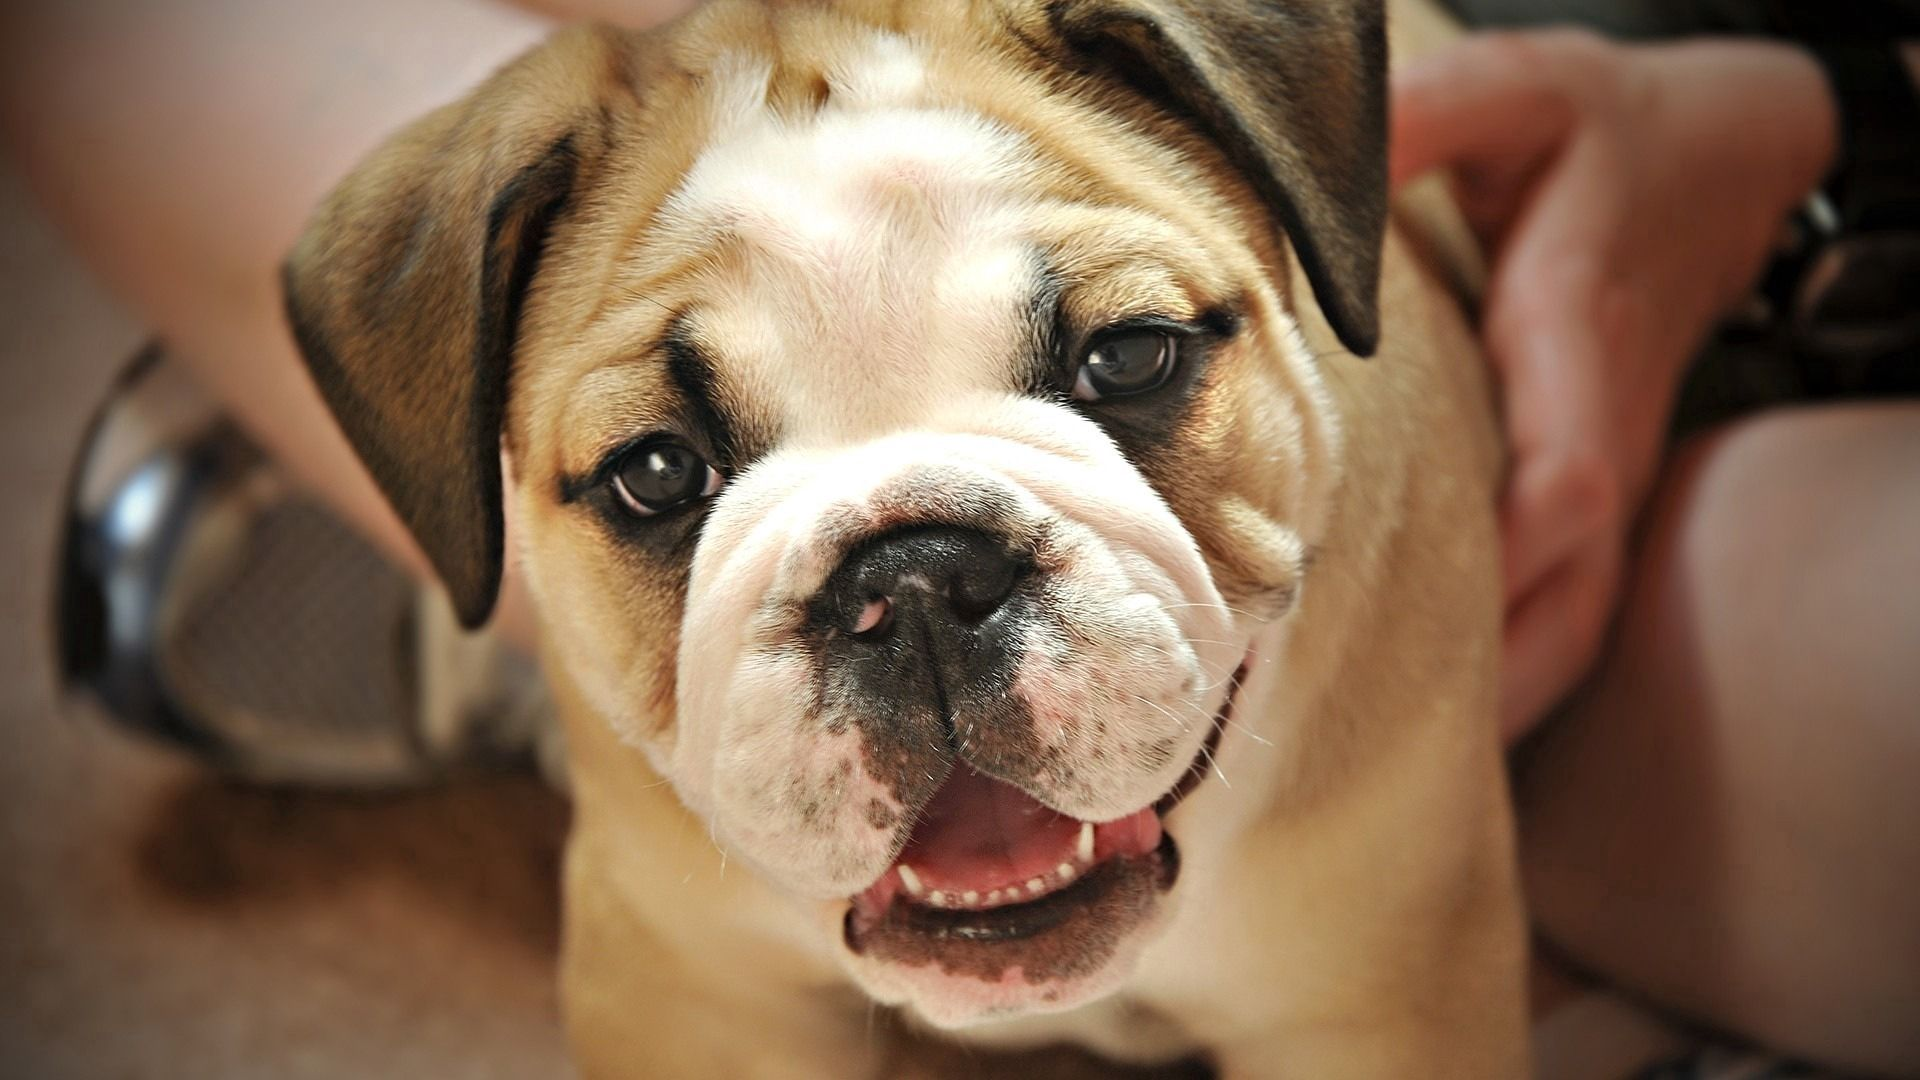 112302 download wallpaper Animals, Dog, Small, Petite, Puppy, Nice, Sweetheart, Muzzle screensavers and pictures for free